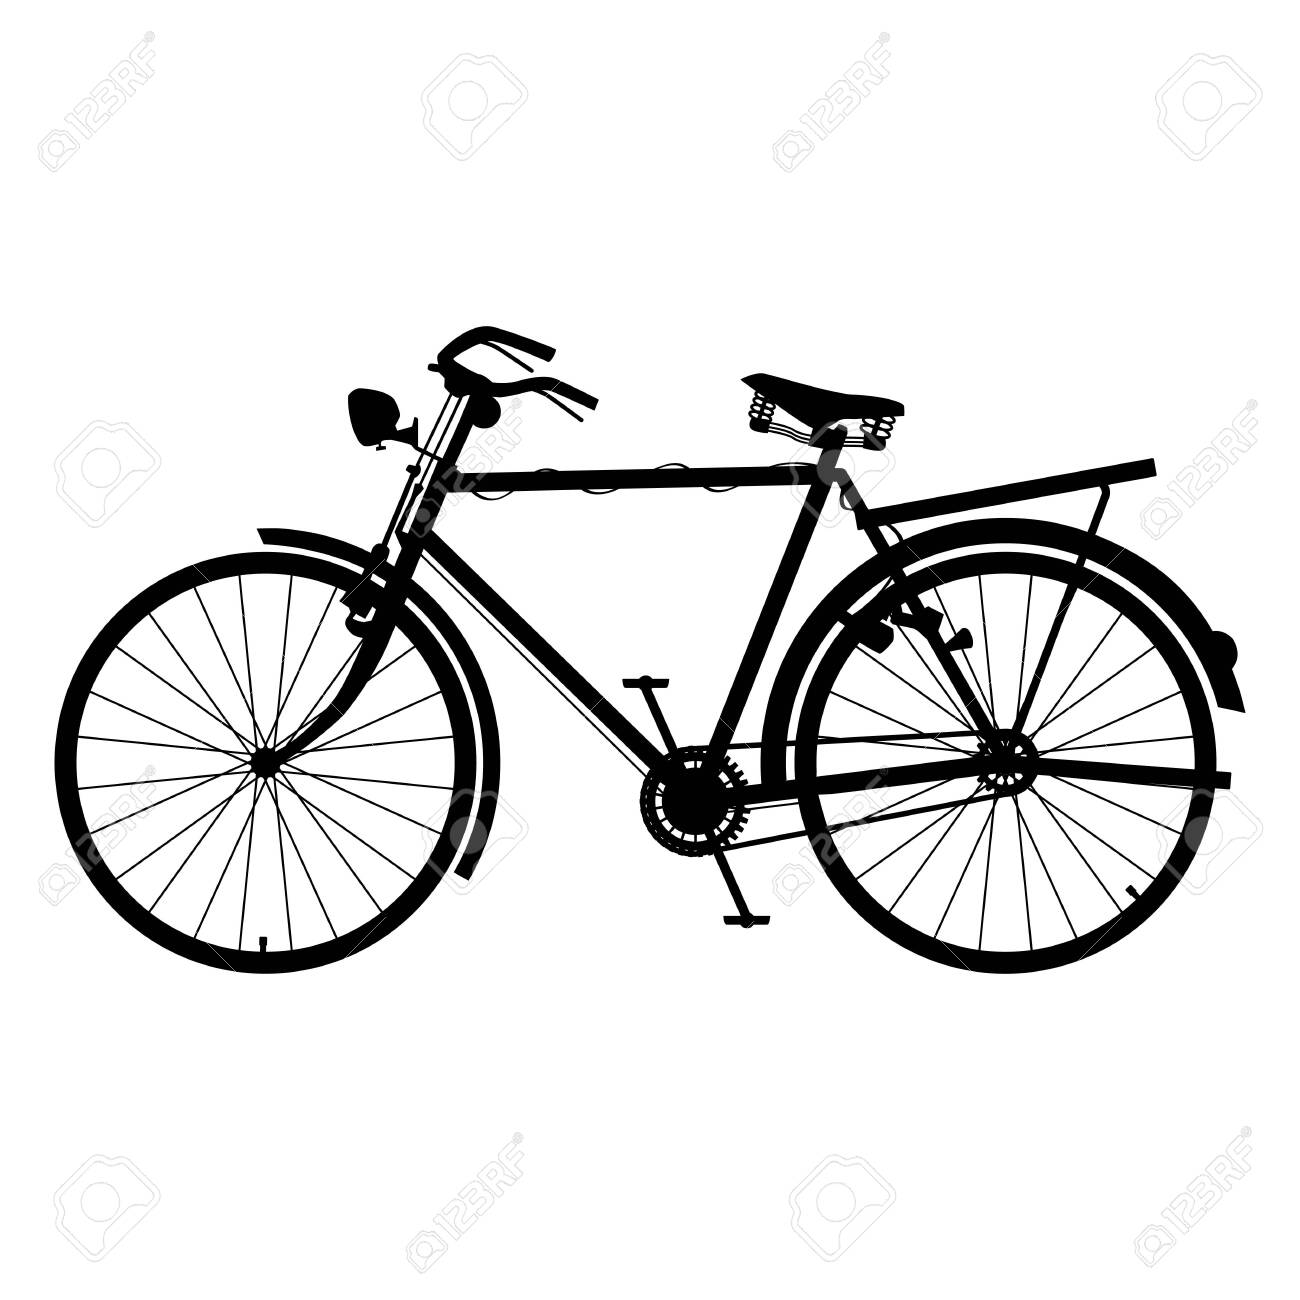 Classic Bicycle Icon Silhouette Detailed Bike Black Color - 154900039